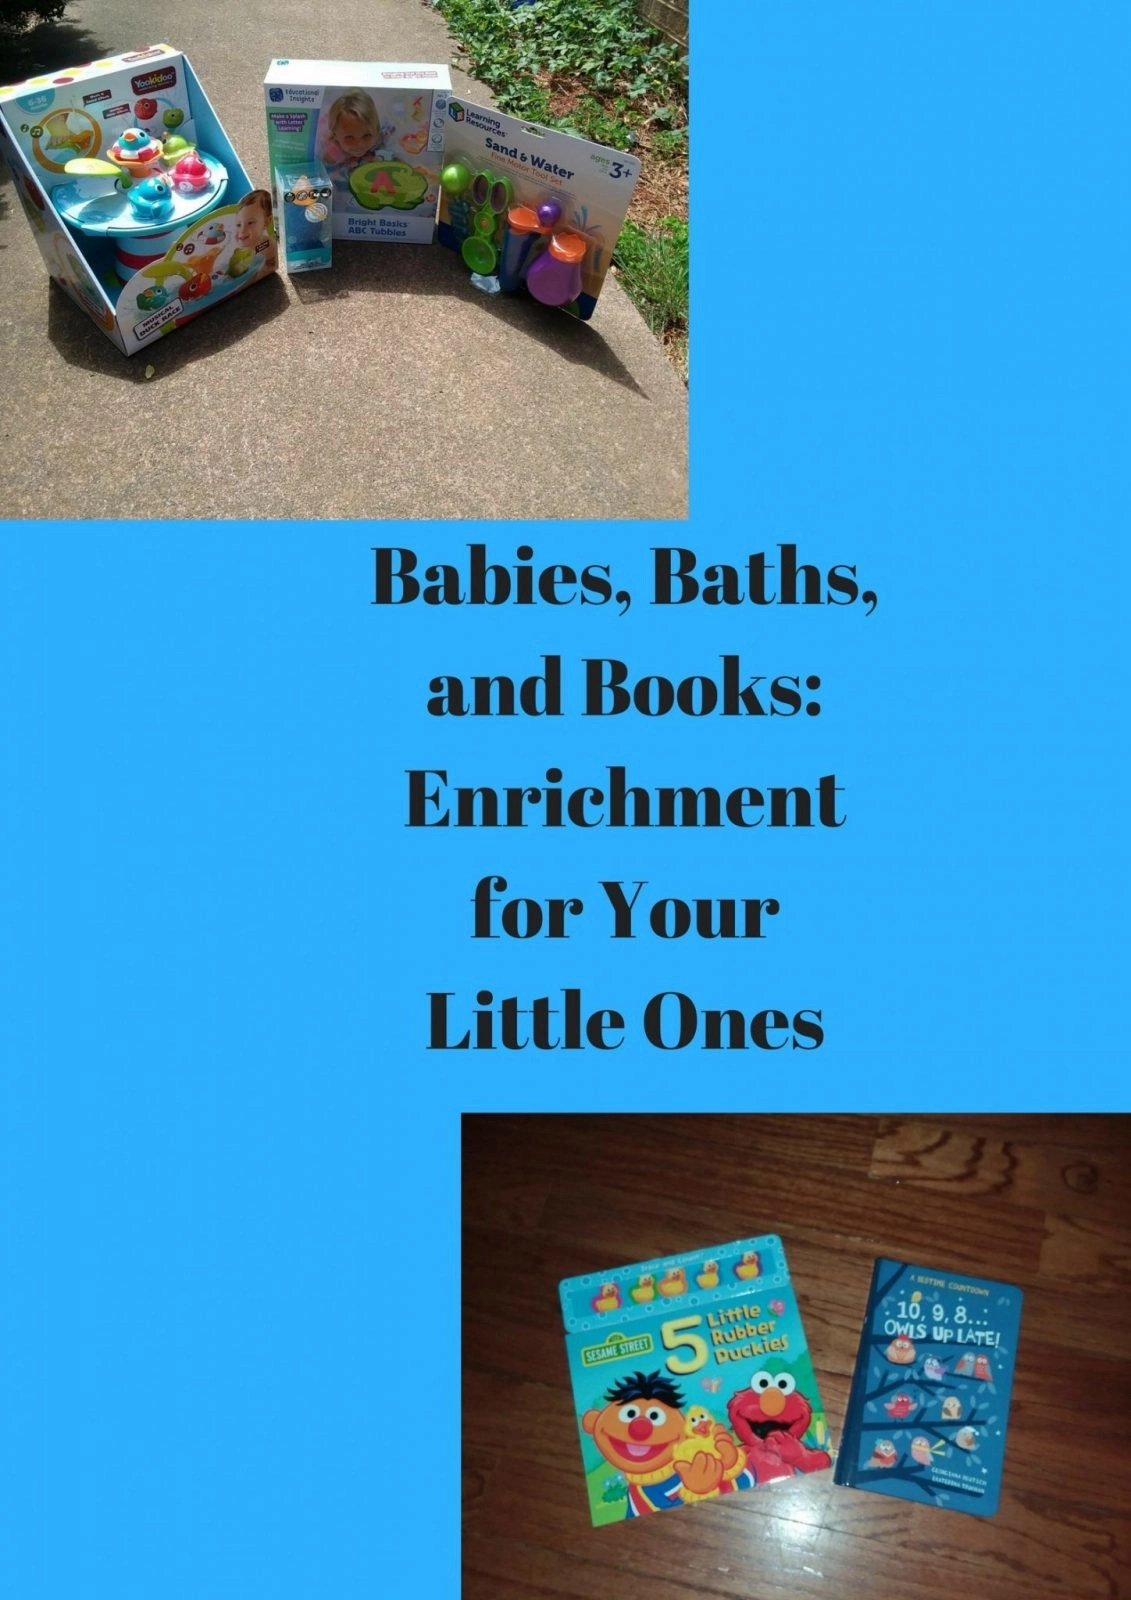 Babies, Baths, and Books_ Enrichment for Your Little Ones